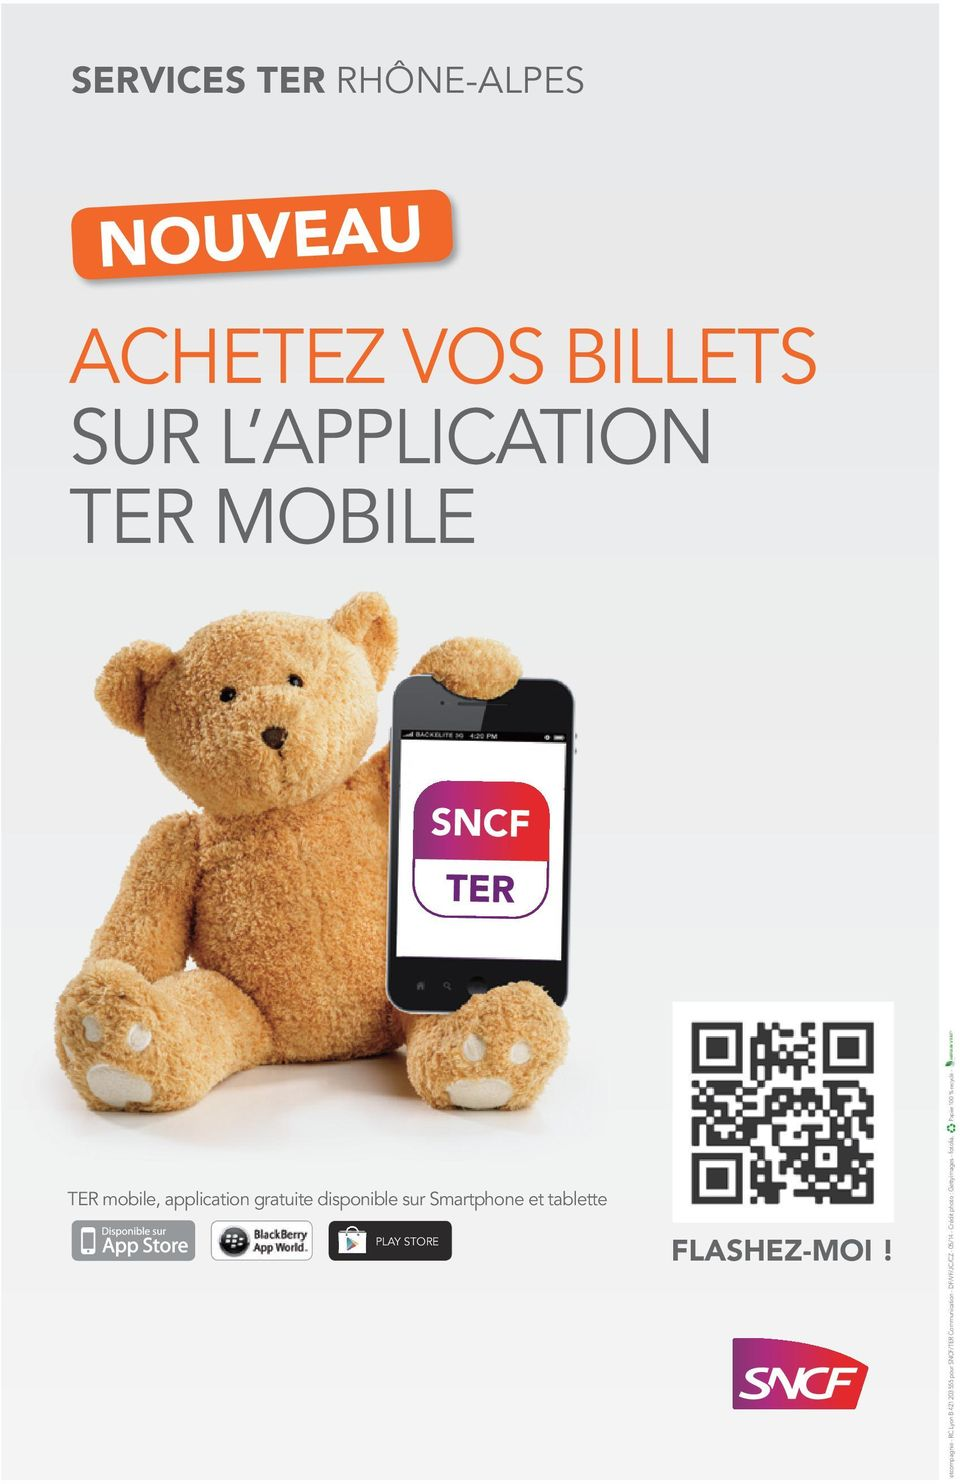 Smartphone et tablette PLAY STORE FLASHEZ-MOI!